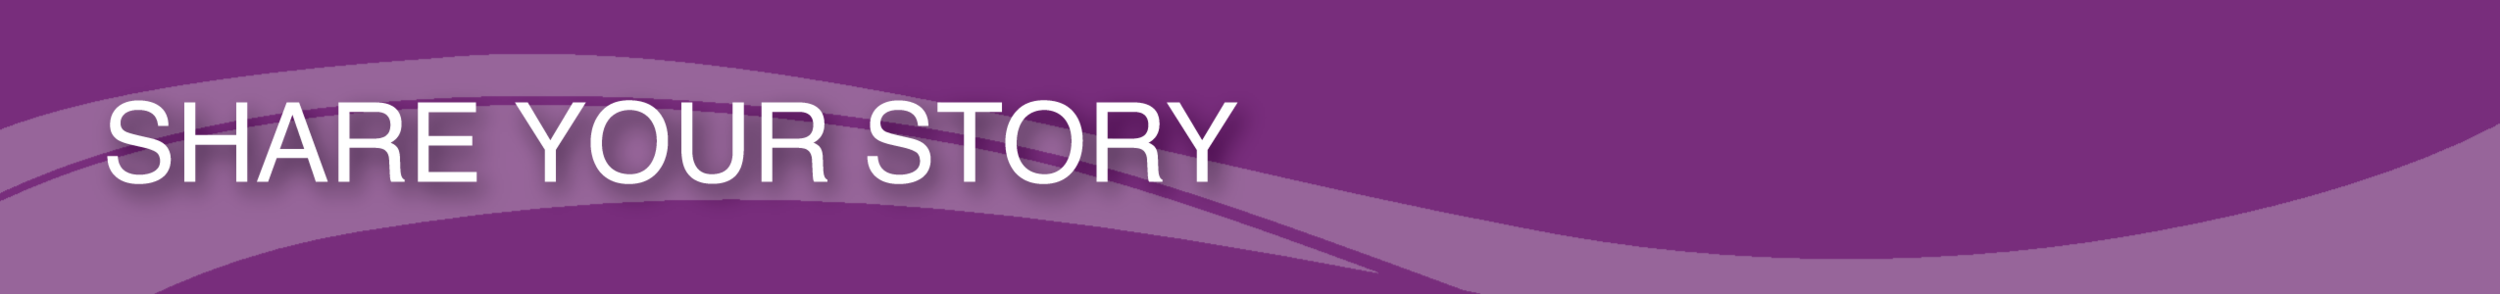 WDHF_HEADER_SHARE YOUR STORY.png